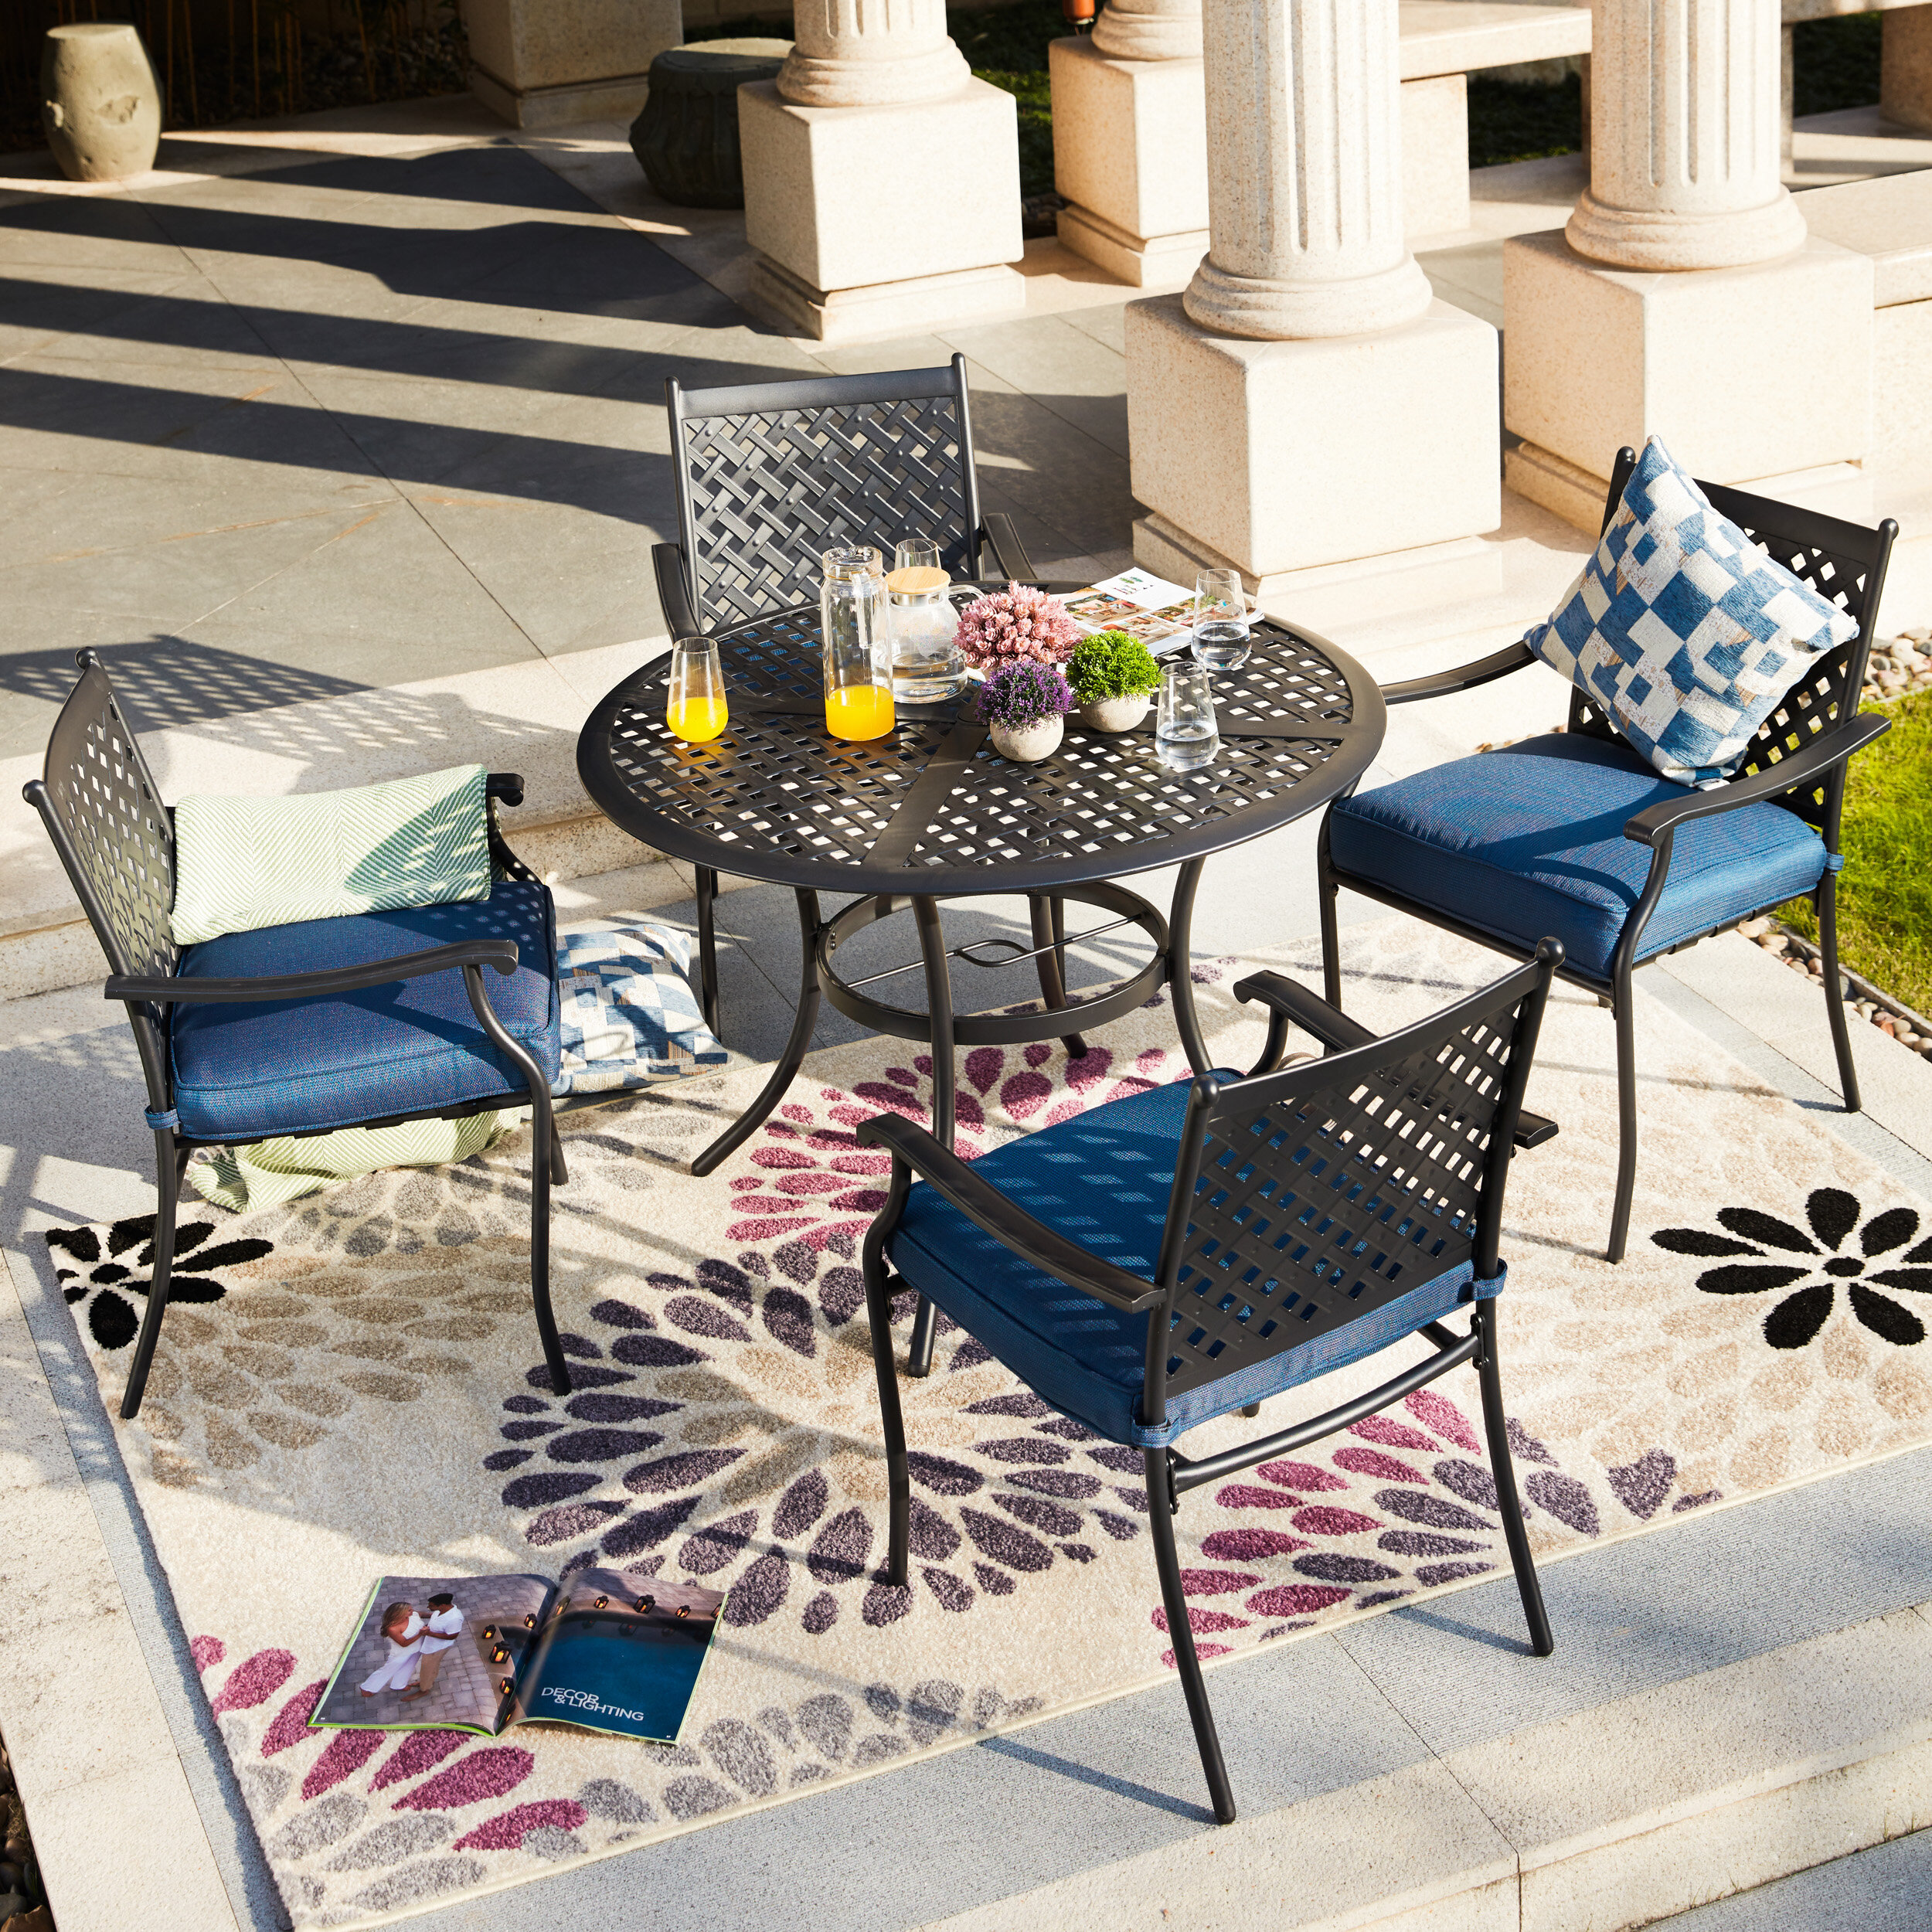 Wayfair Round Patio Dining Sets You Ll Love In 2021